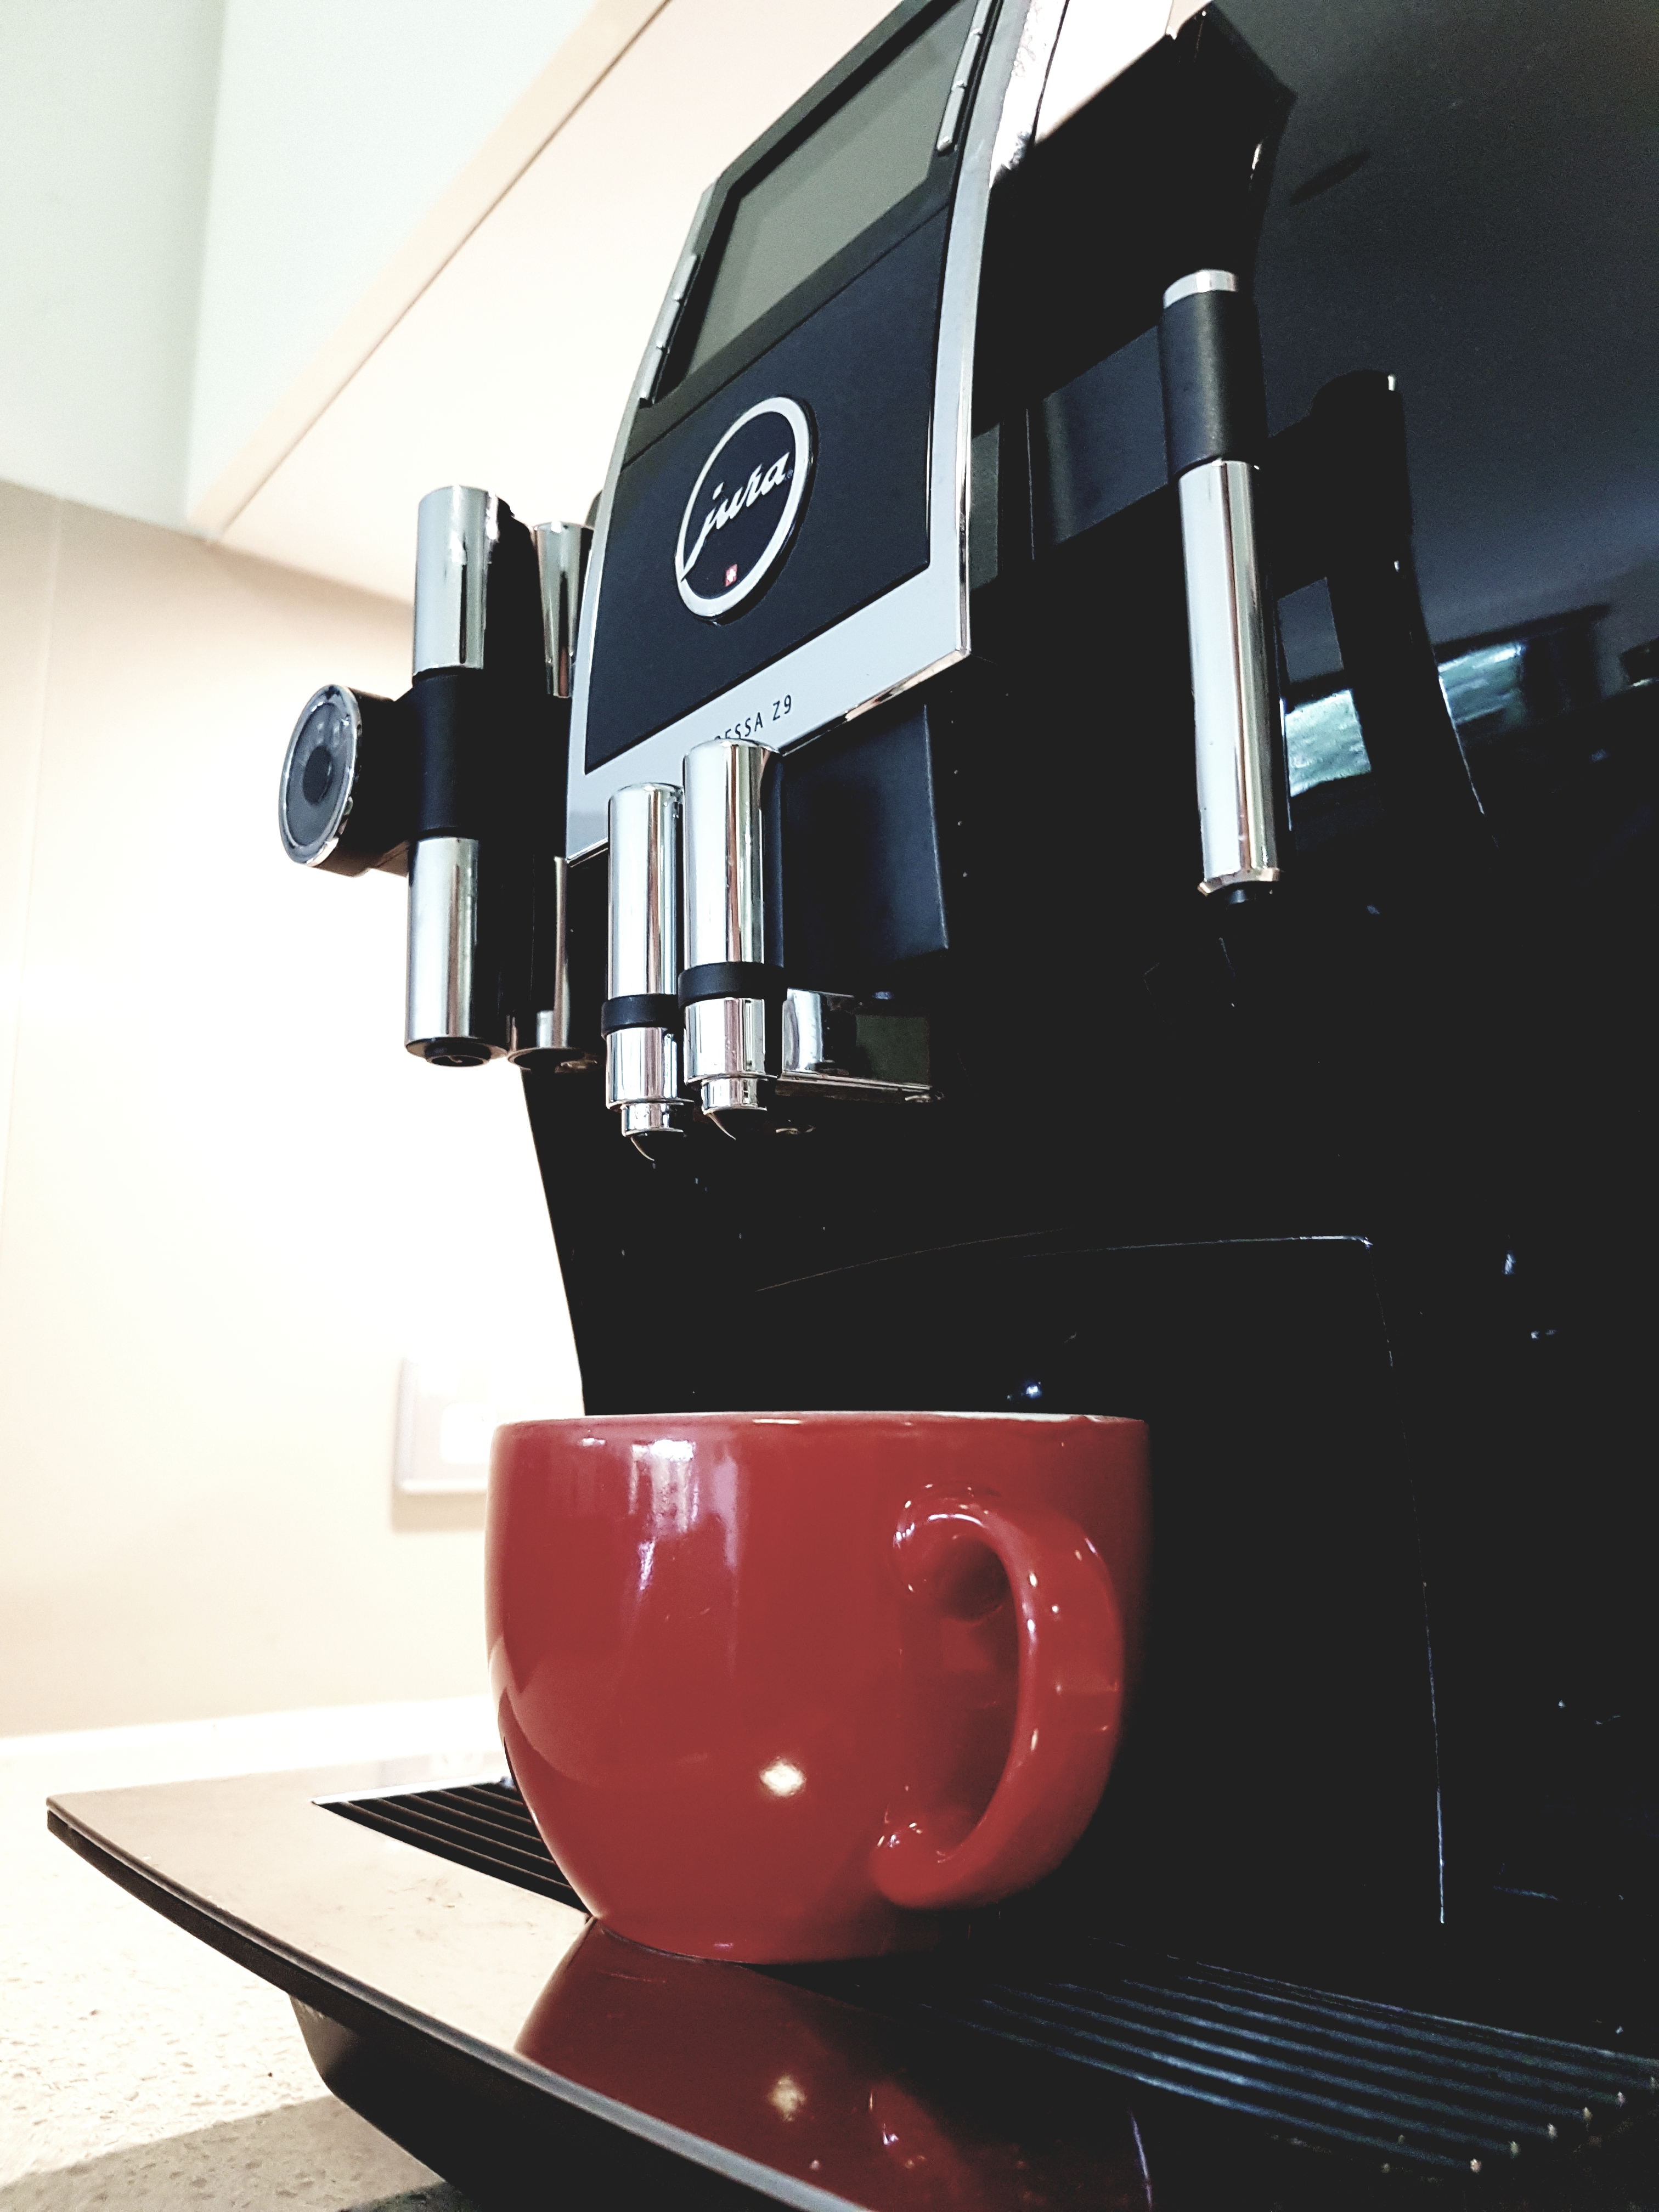 Free stock photo of red, coffee, cup, drink